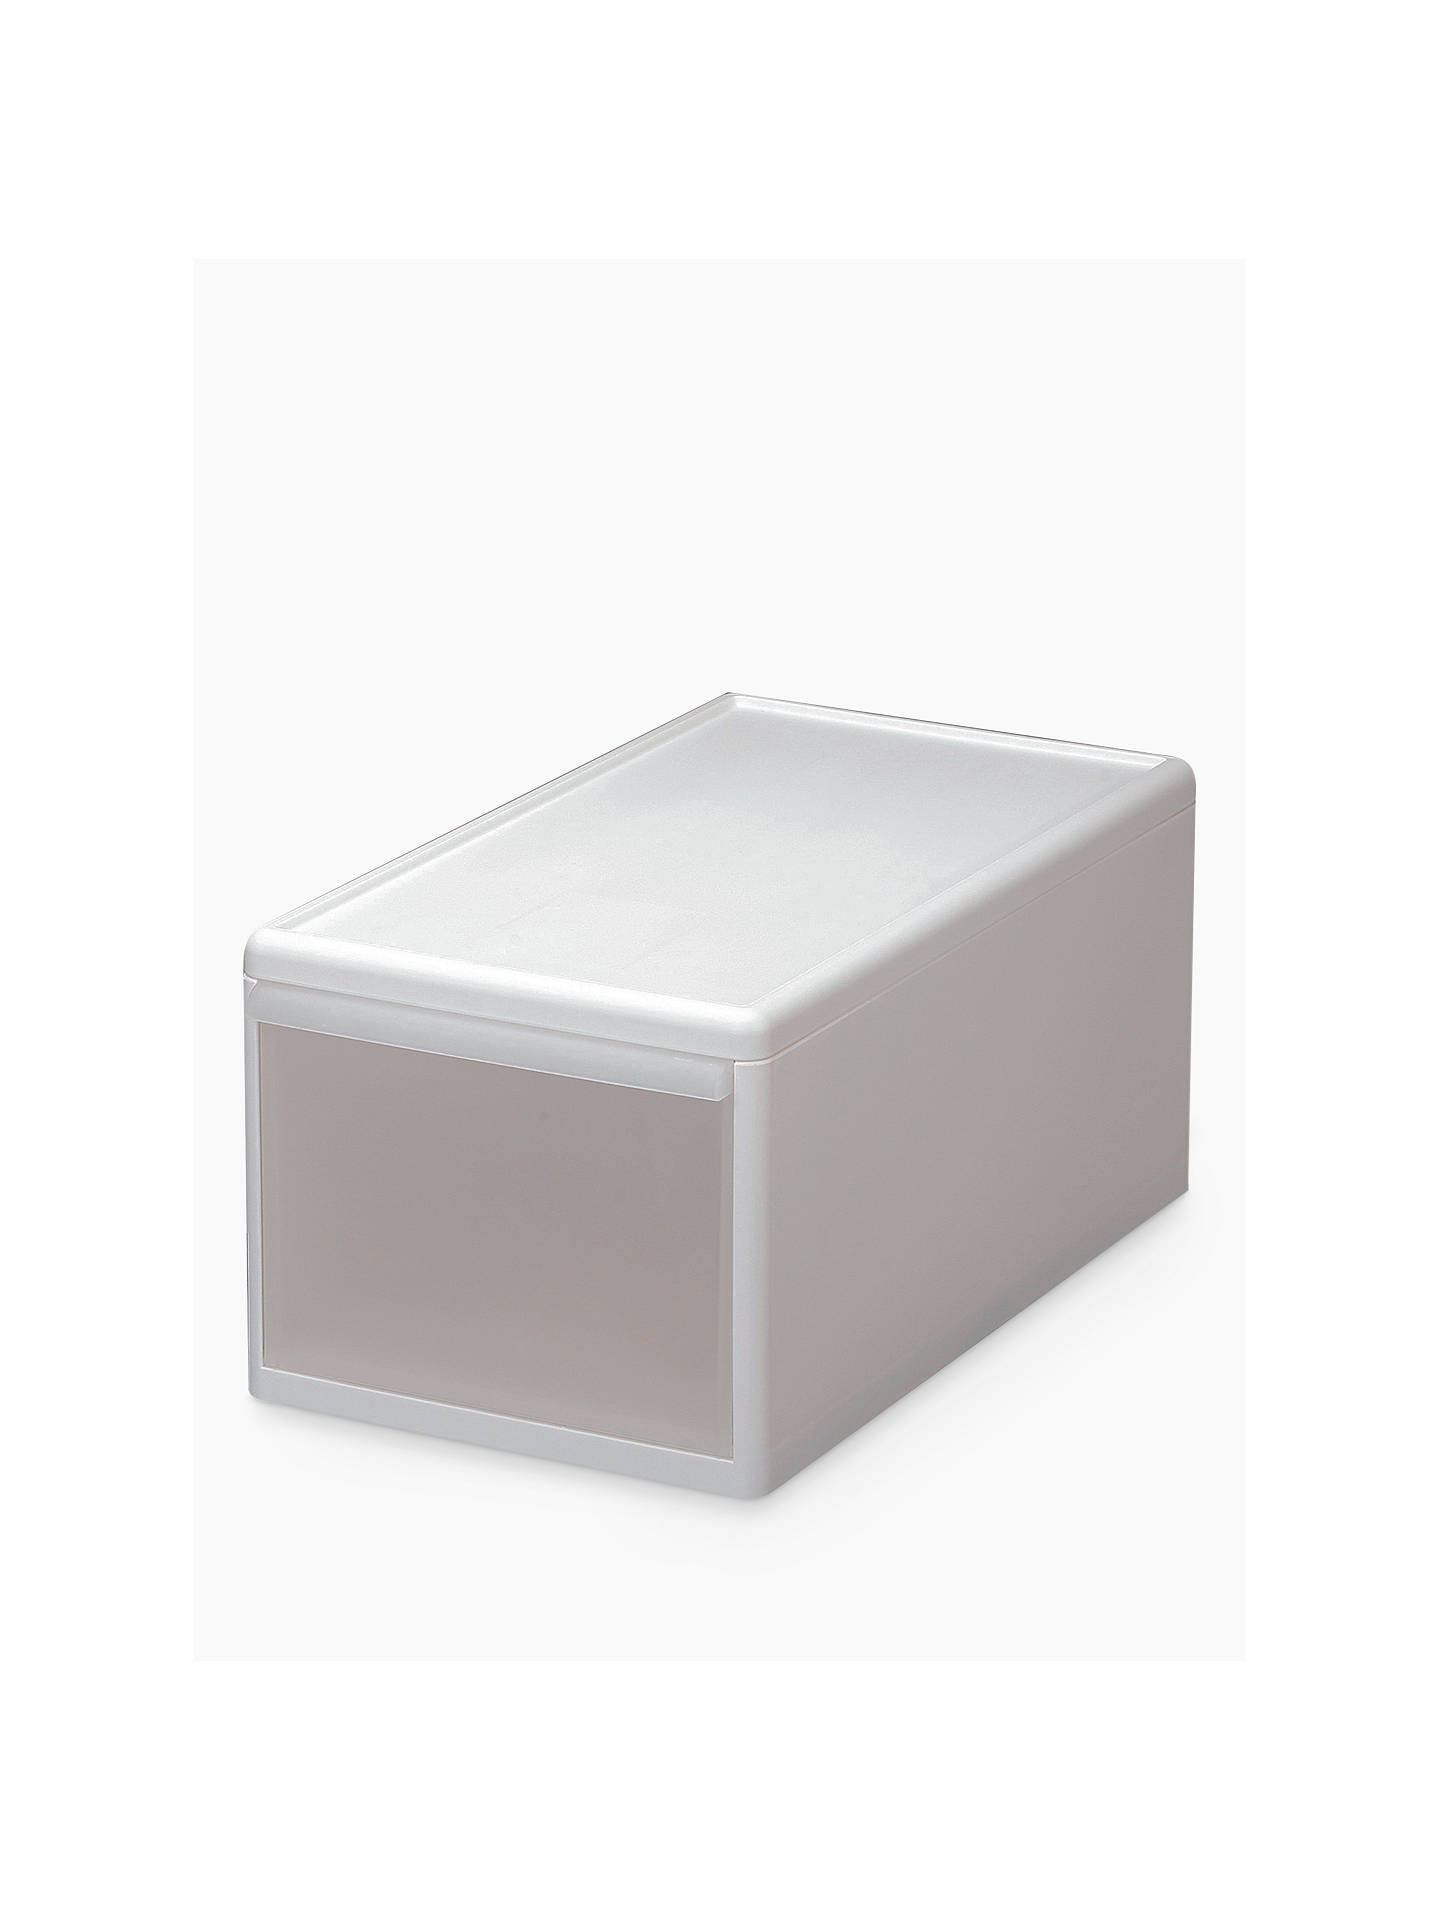 Buylike-it Unicom Plastic Storage Drawer, Medium, W25.5cm Online at johnlewis.com